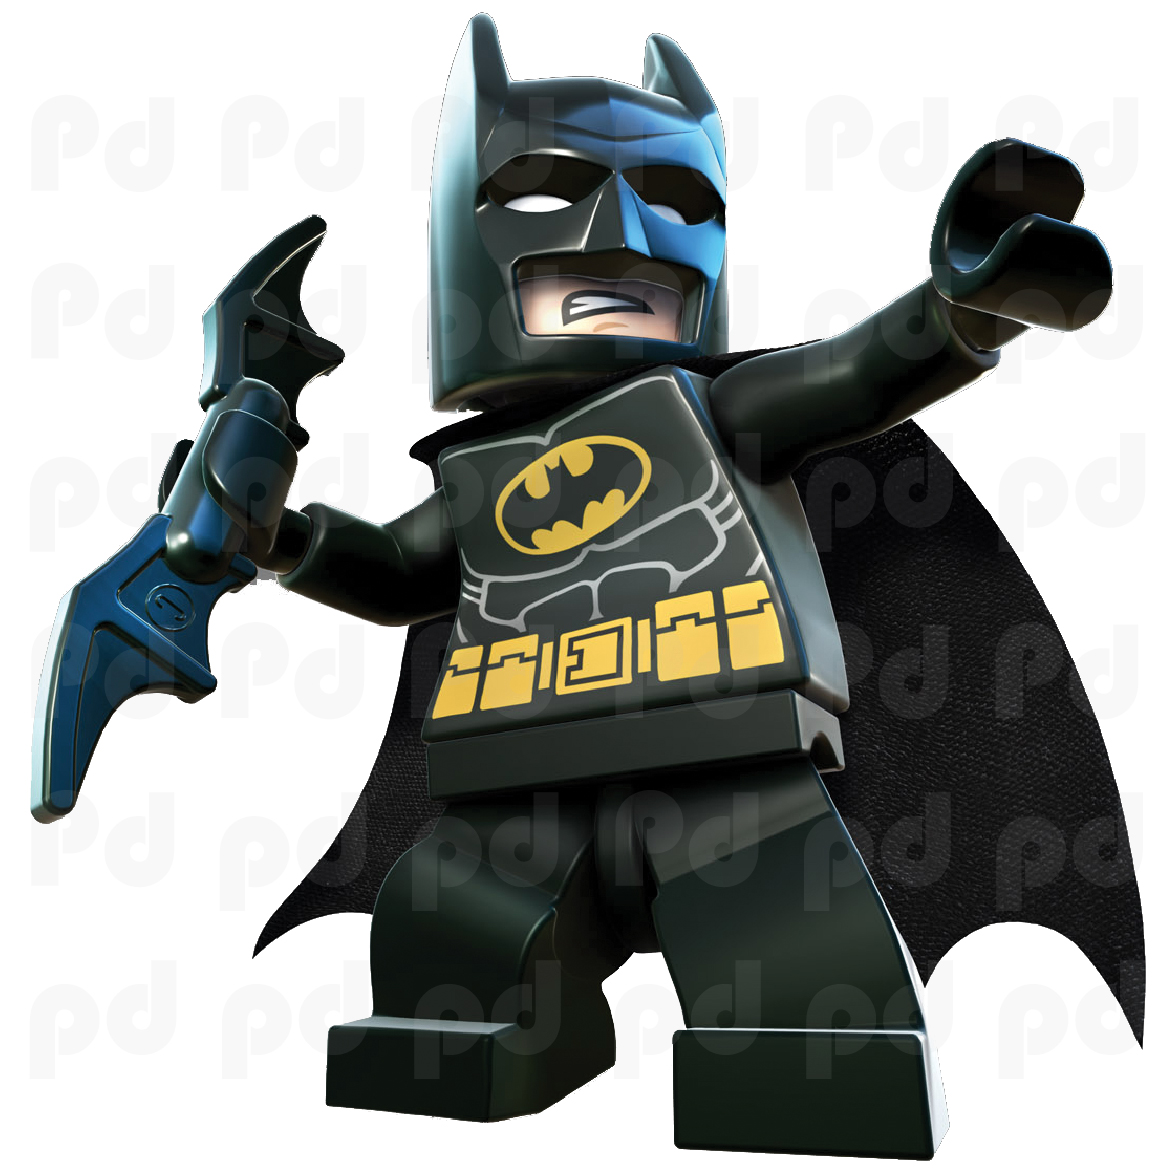 Lego Batman Wall Decal - Superhero Wall Design - The Dark ...